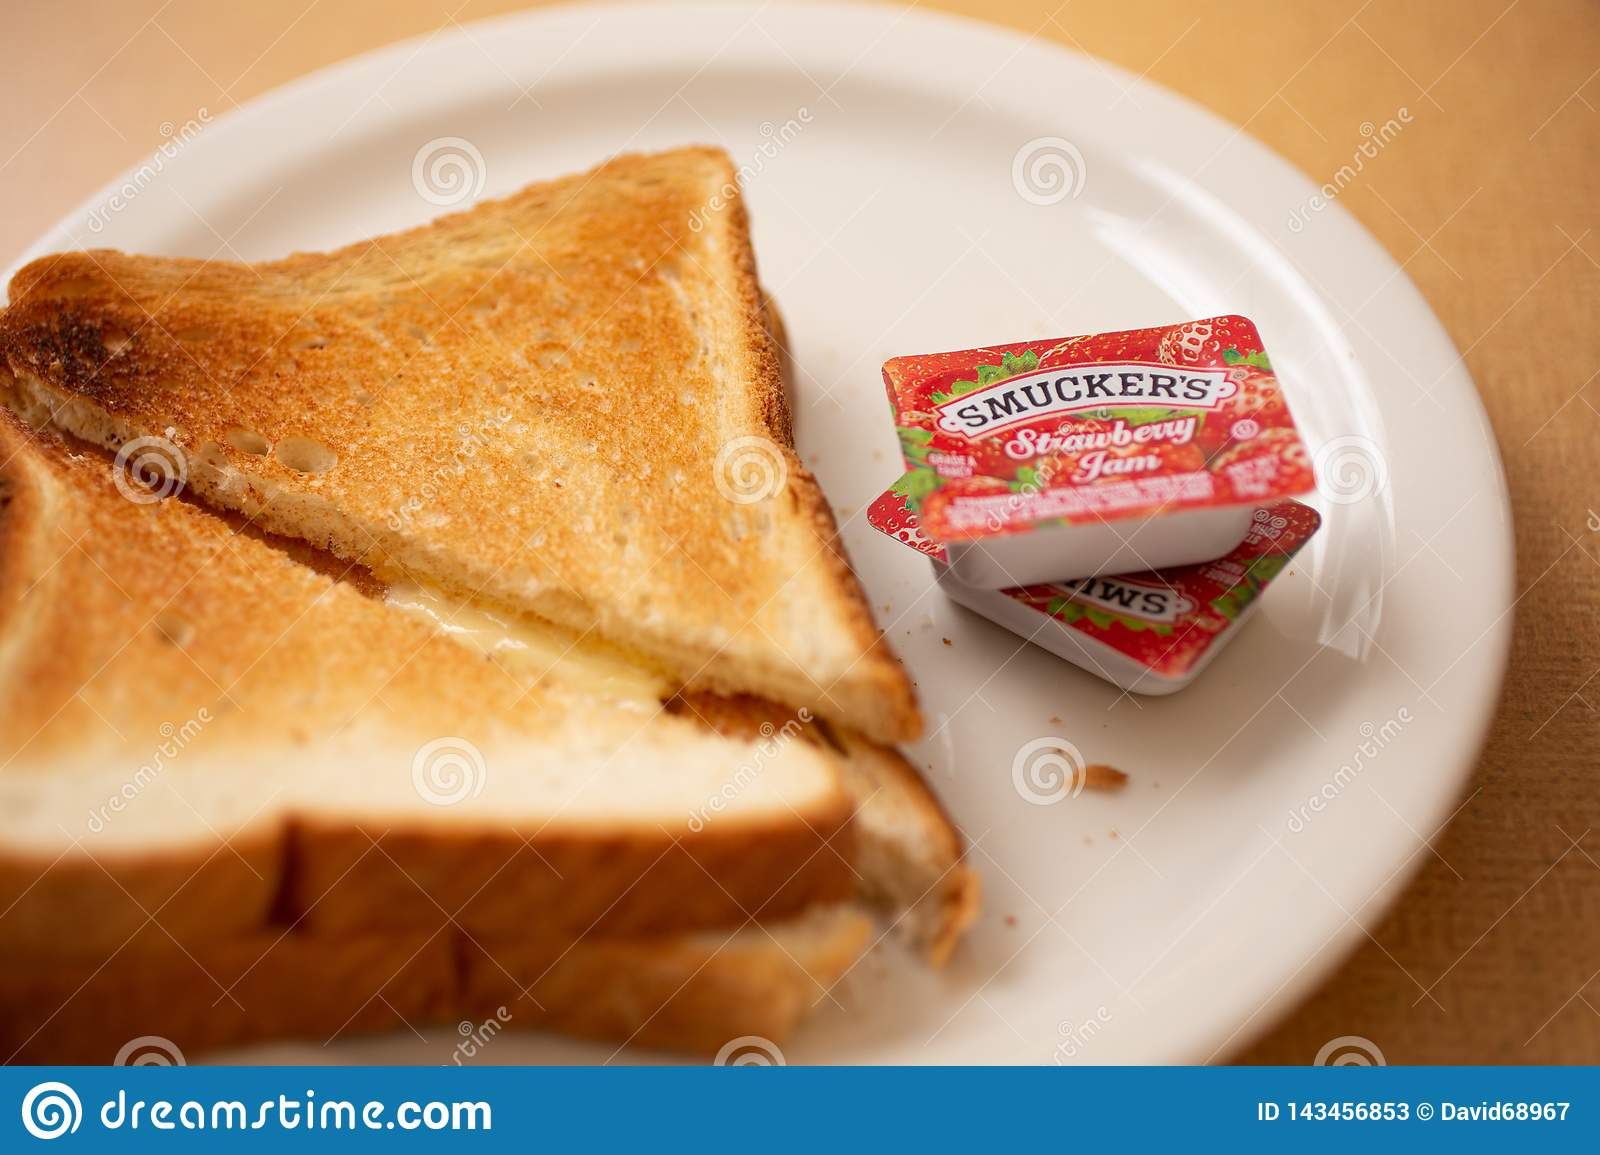 Smuckers jam and toast at a restaurant